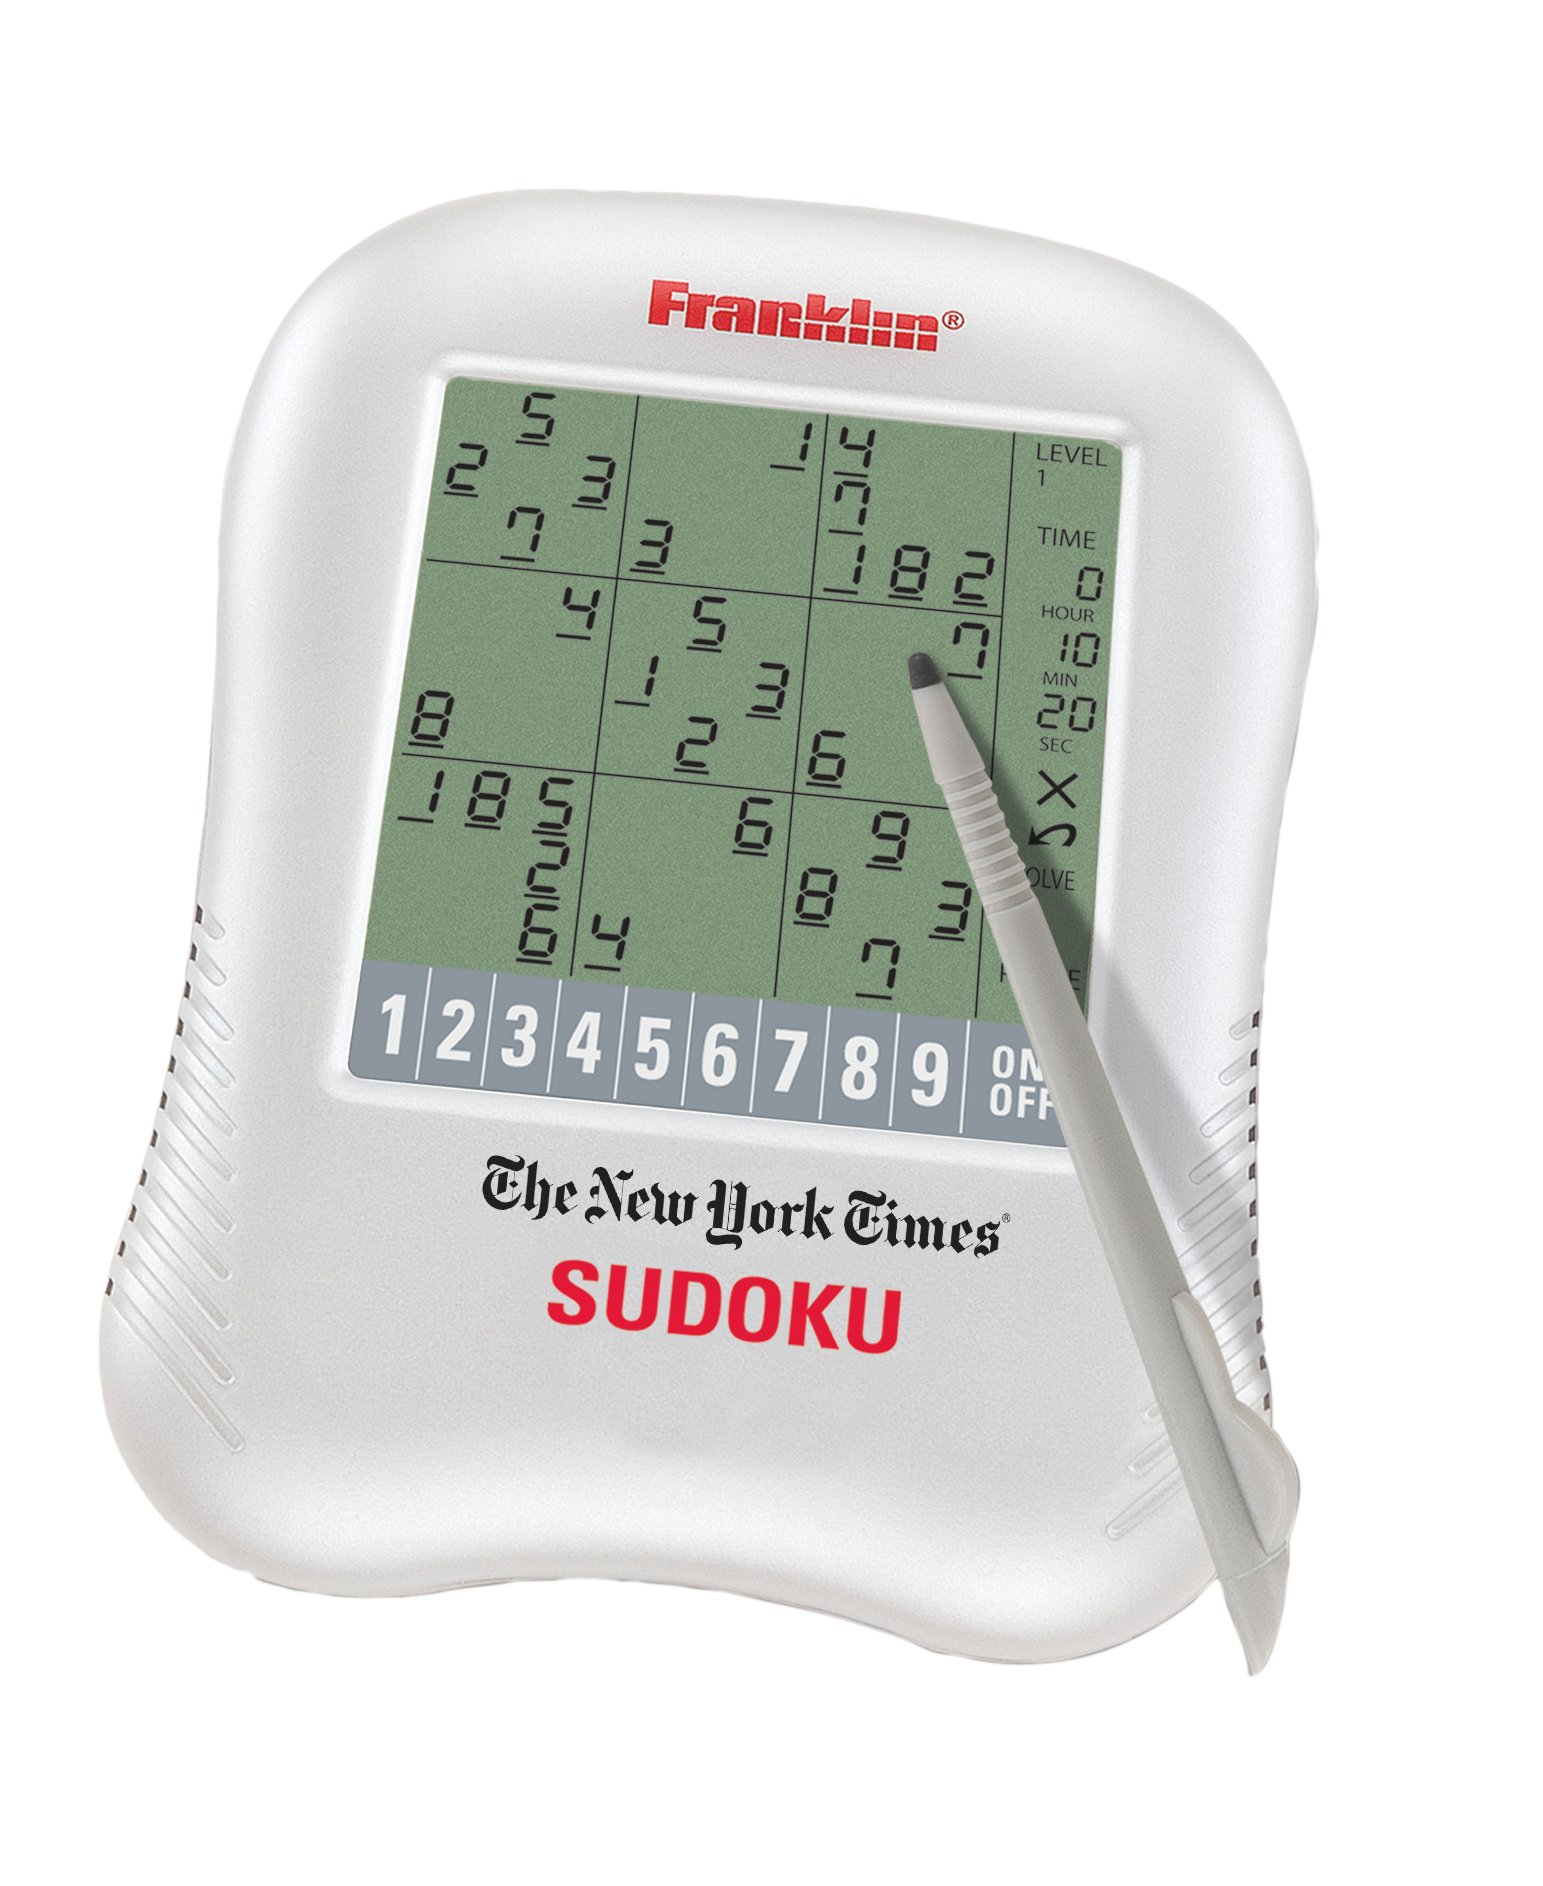 Franklin New York Times Handheld Sudoku Game (NYT-320SDU) by Franklin